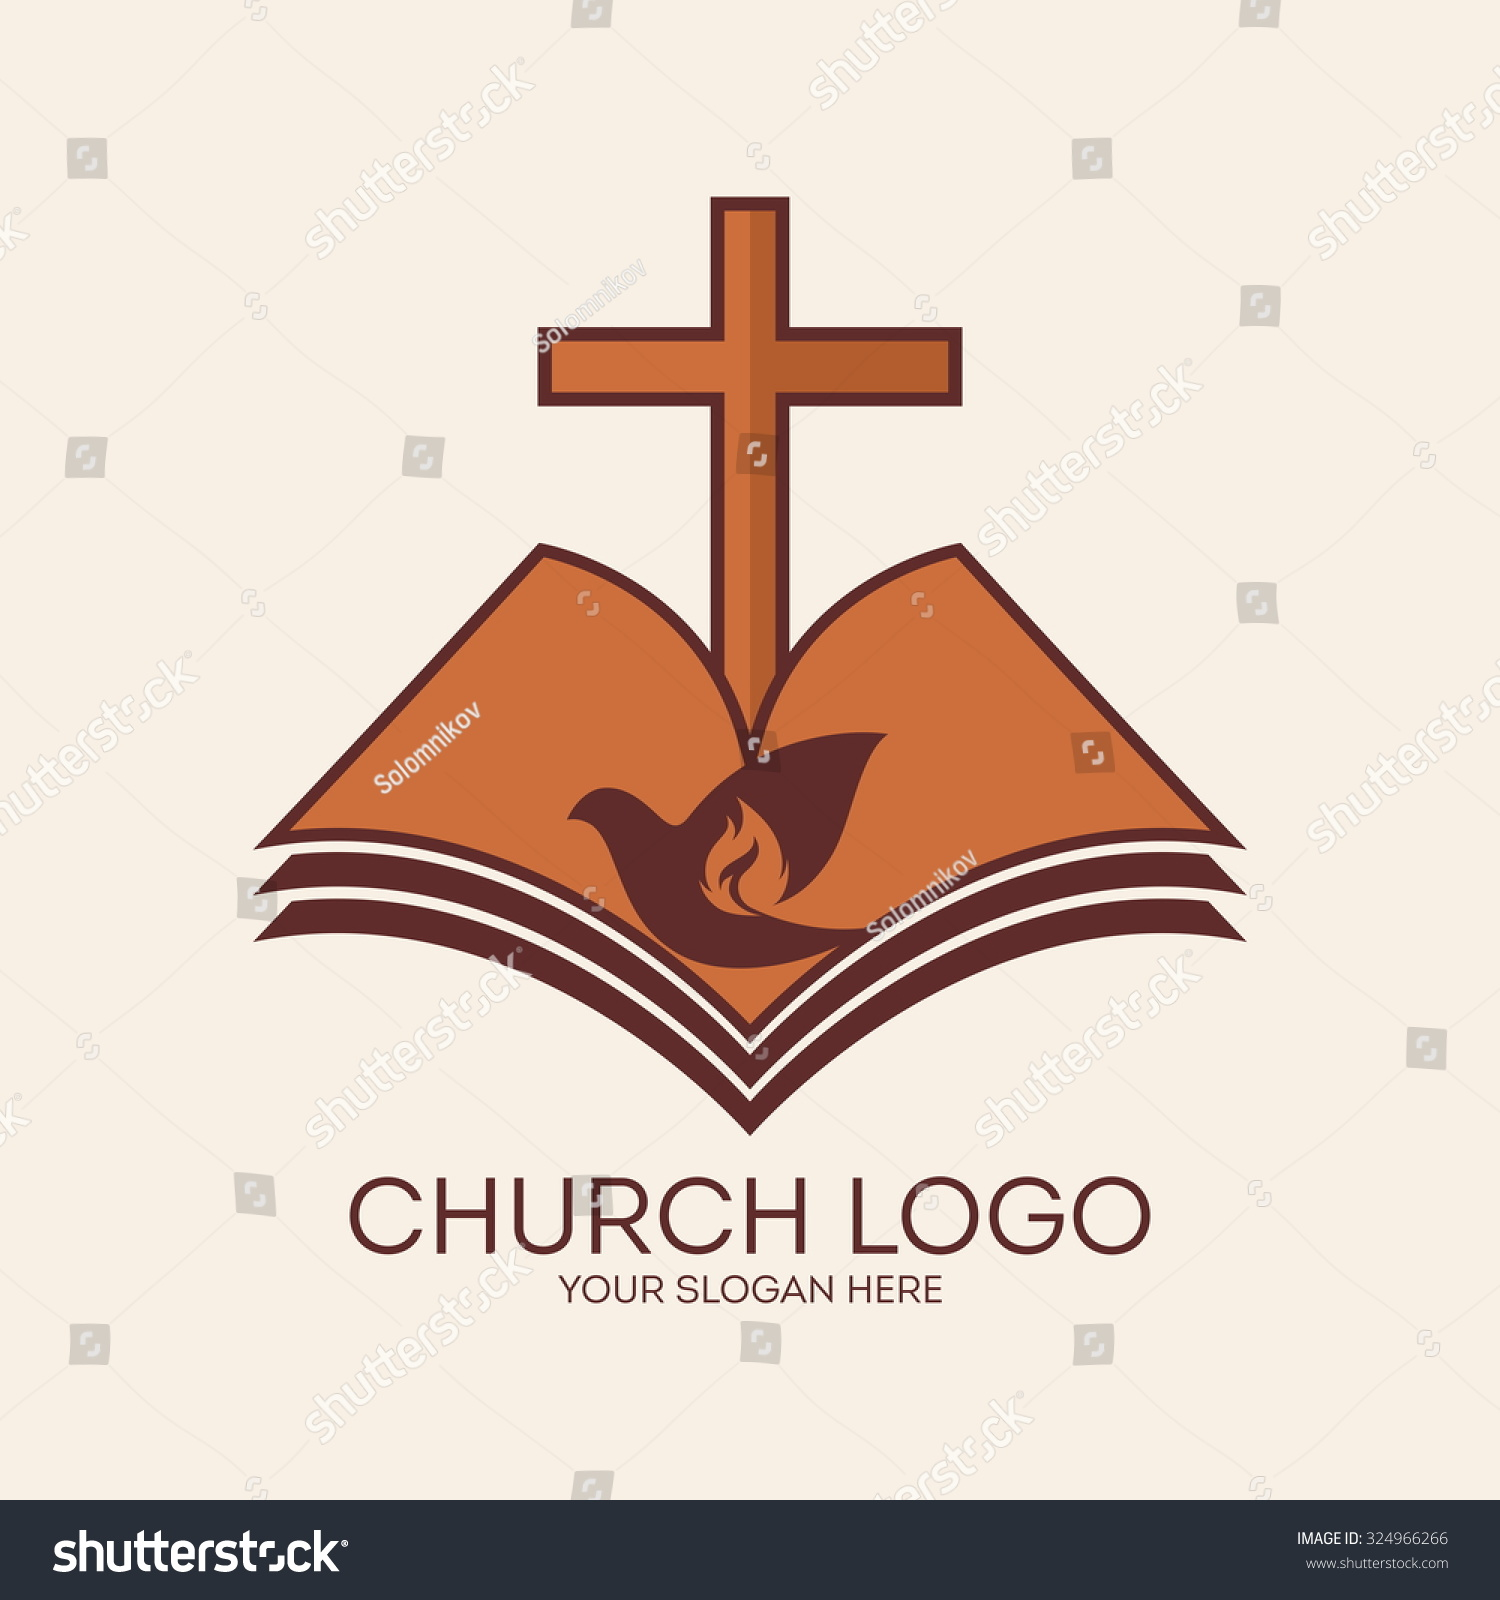 Royalty free church logo cross and open bible dove 324966266 church logo cross and open bible dove and flame 324966266 altavistaventures Choice Image